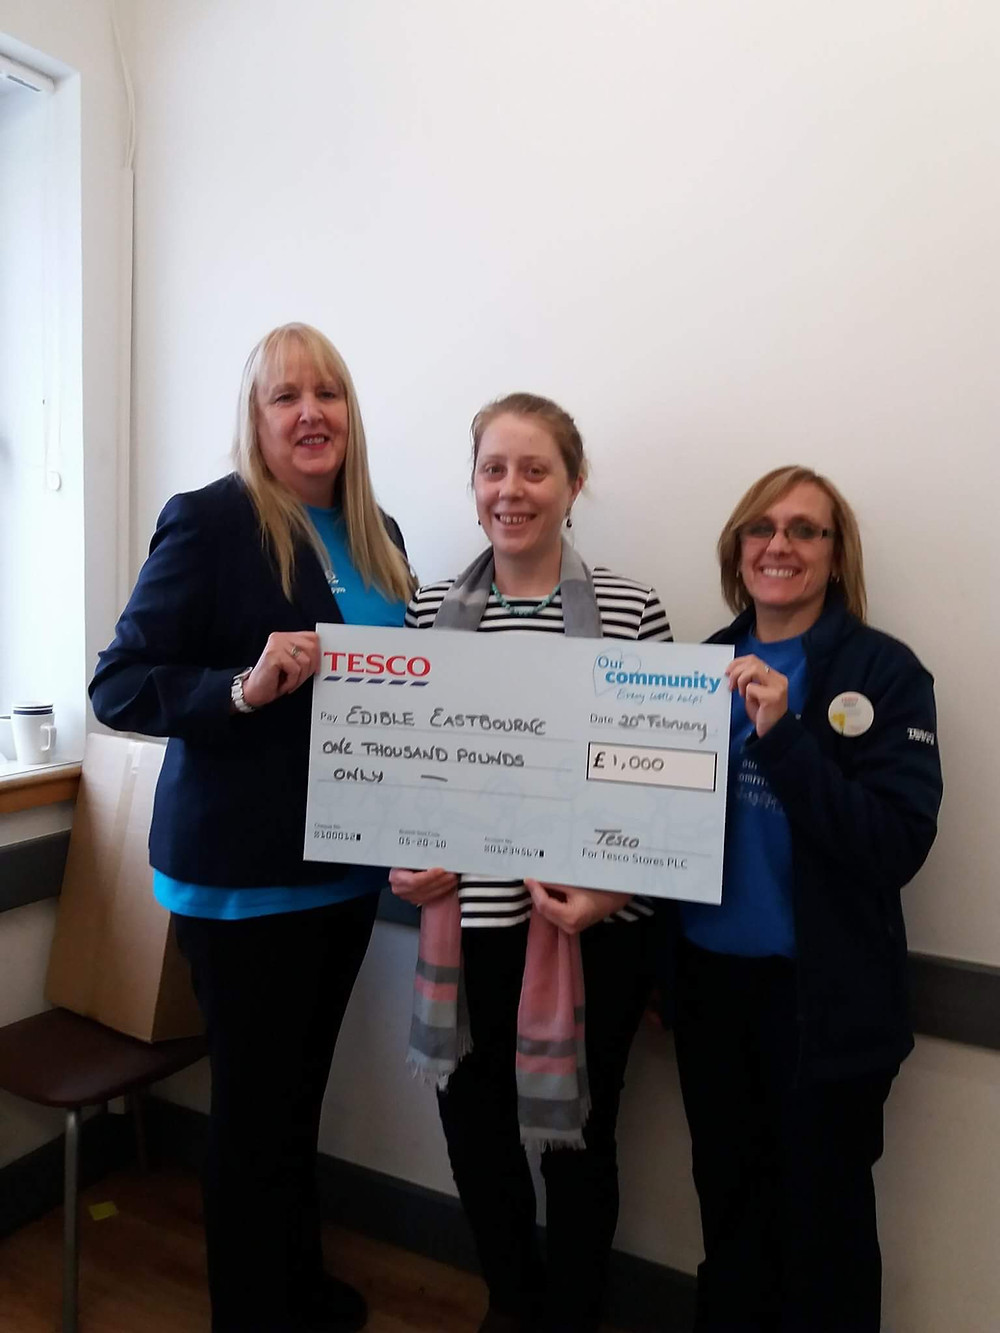 Project Manager Sara Latimer recieveing funding cheque from Tesco community team Irene and Nikki